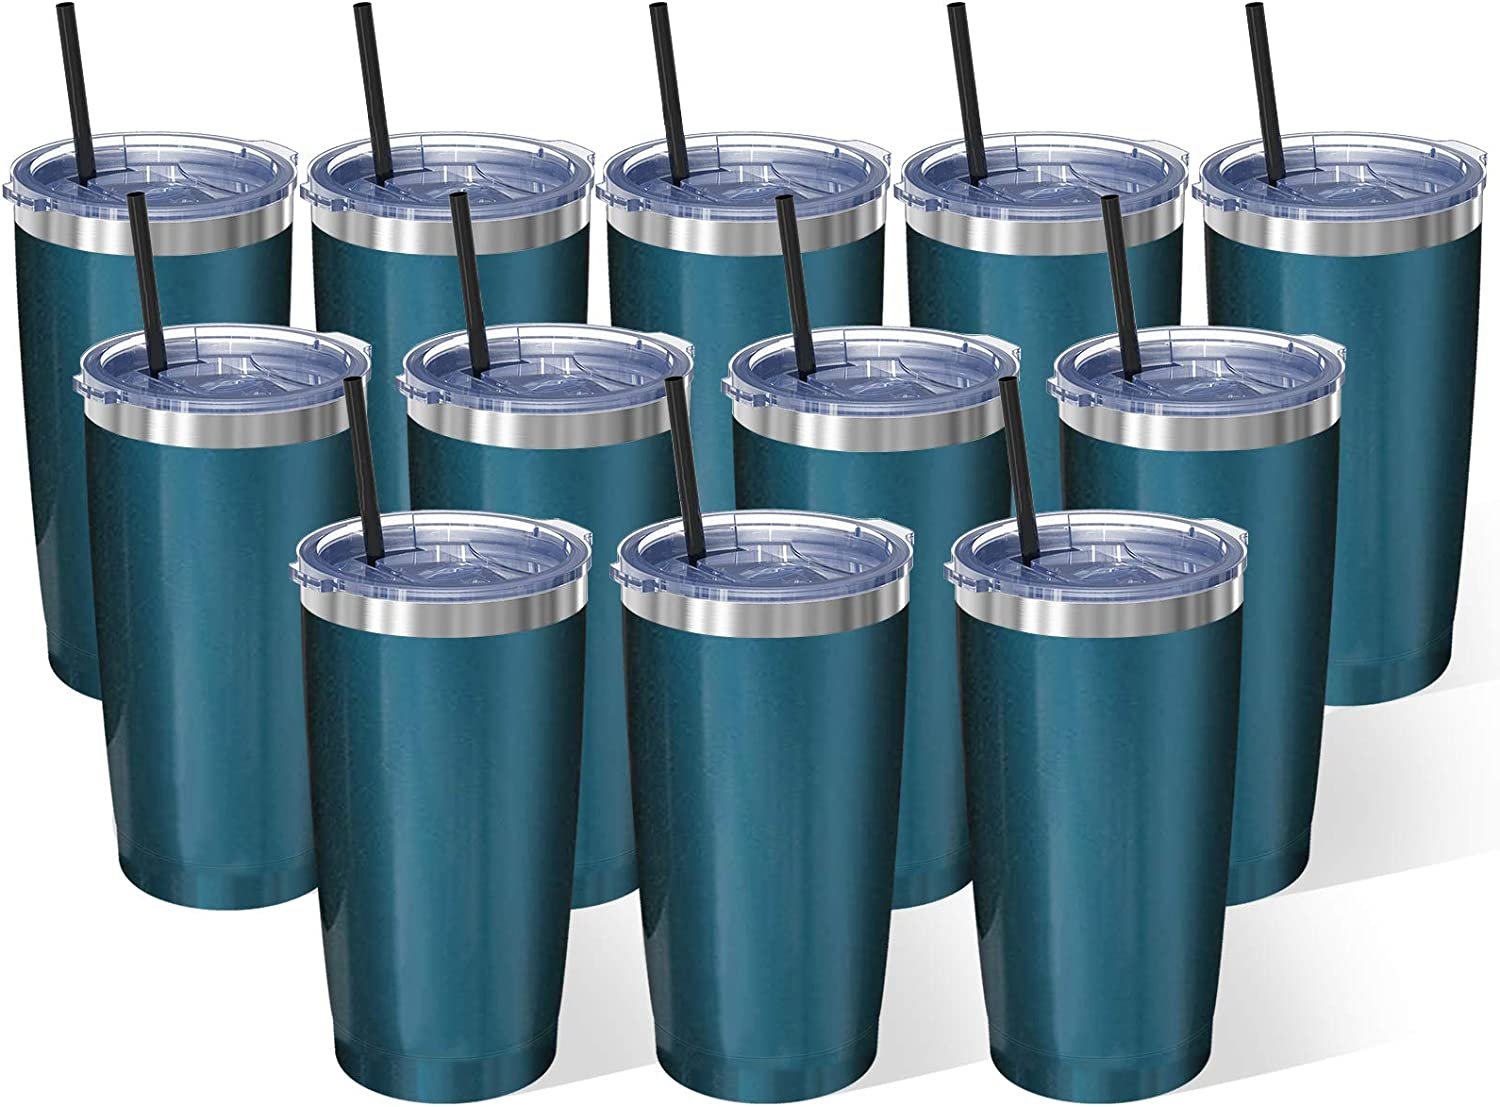 Bastwe 20oz Insulated Tumbler with Lid & Straw, Stainless Steel Coffee Cup, Double Wall Vacuum Insulated Travel Coffee Mug with Splash Proof Sliding Lid for Home & Office (12 Pack, Blue Green)